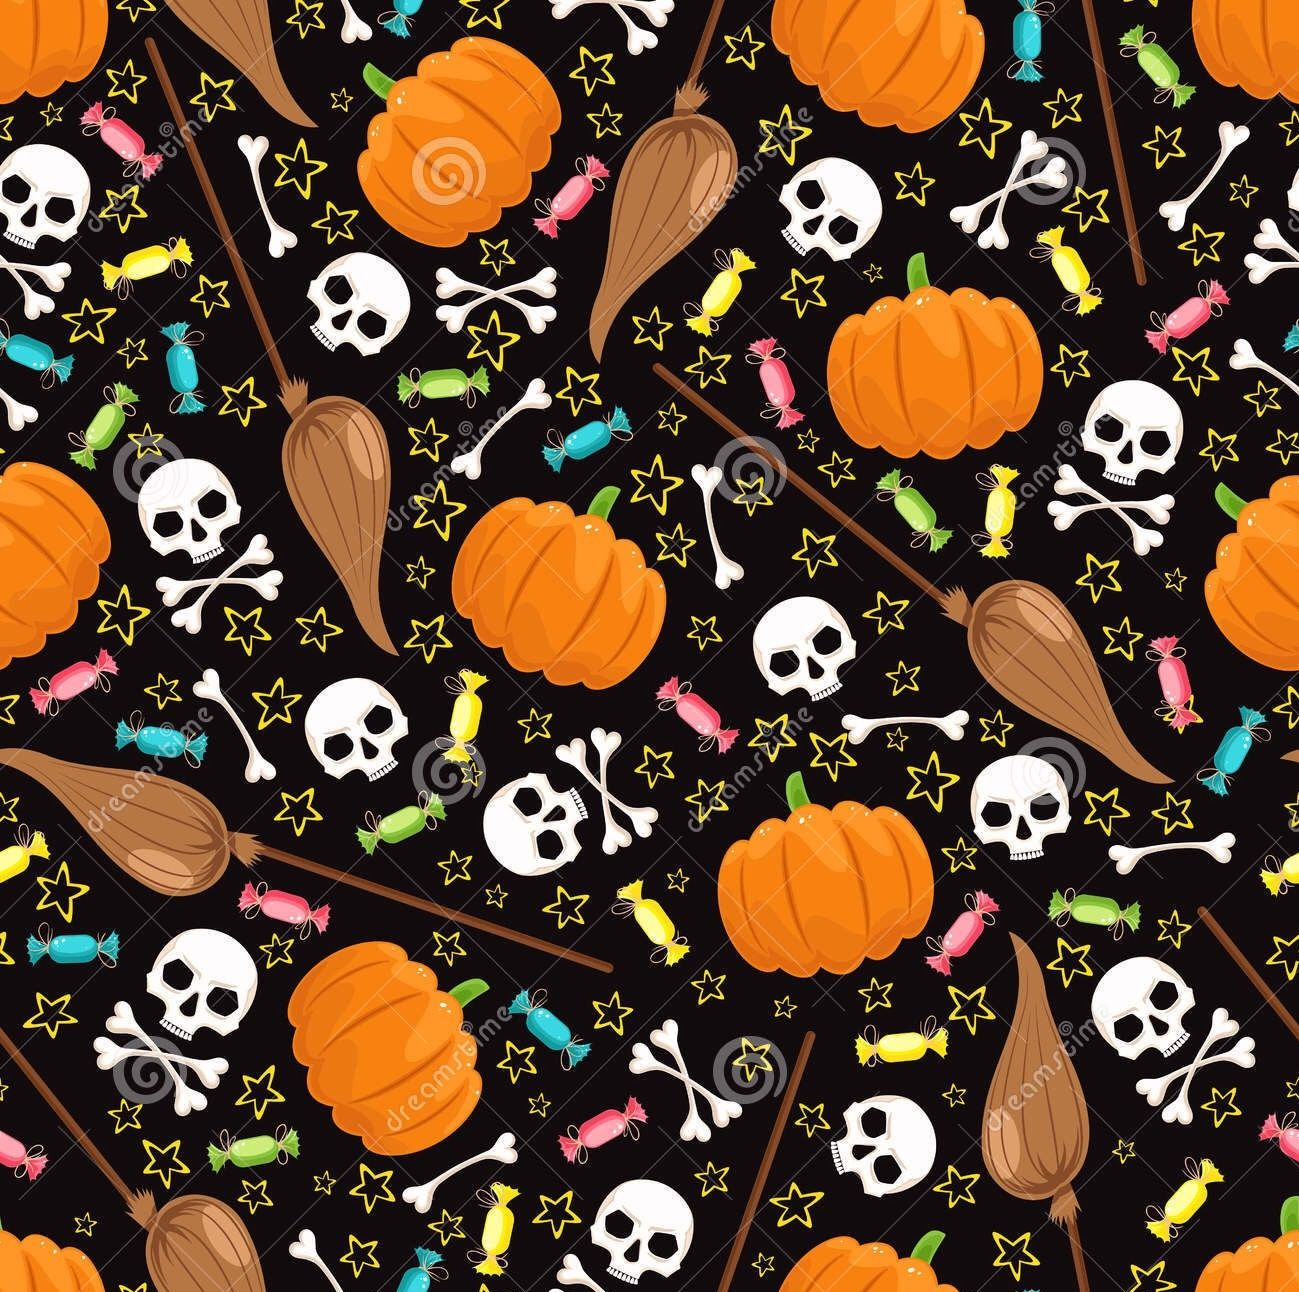 Dreamstime Com Halloween Pattern Halloween Wallpaper Cute Backgrounds Cute Wallpapers For Ipad